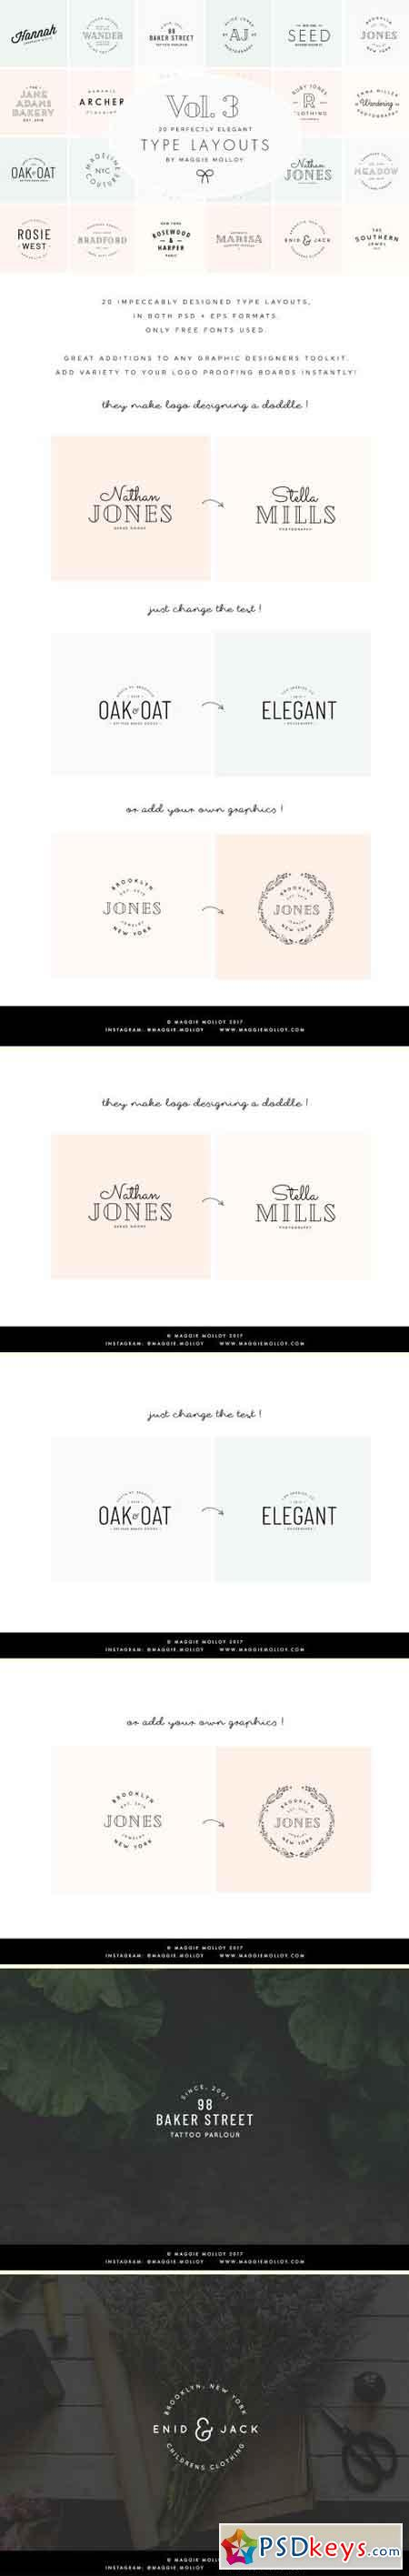 Type Layouts Vol. 3 Text Based Logos 2128086